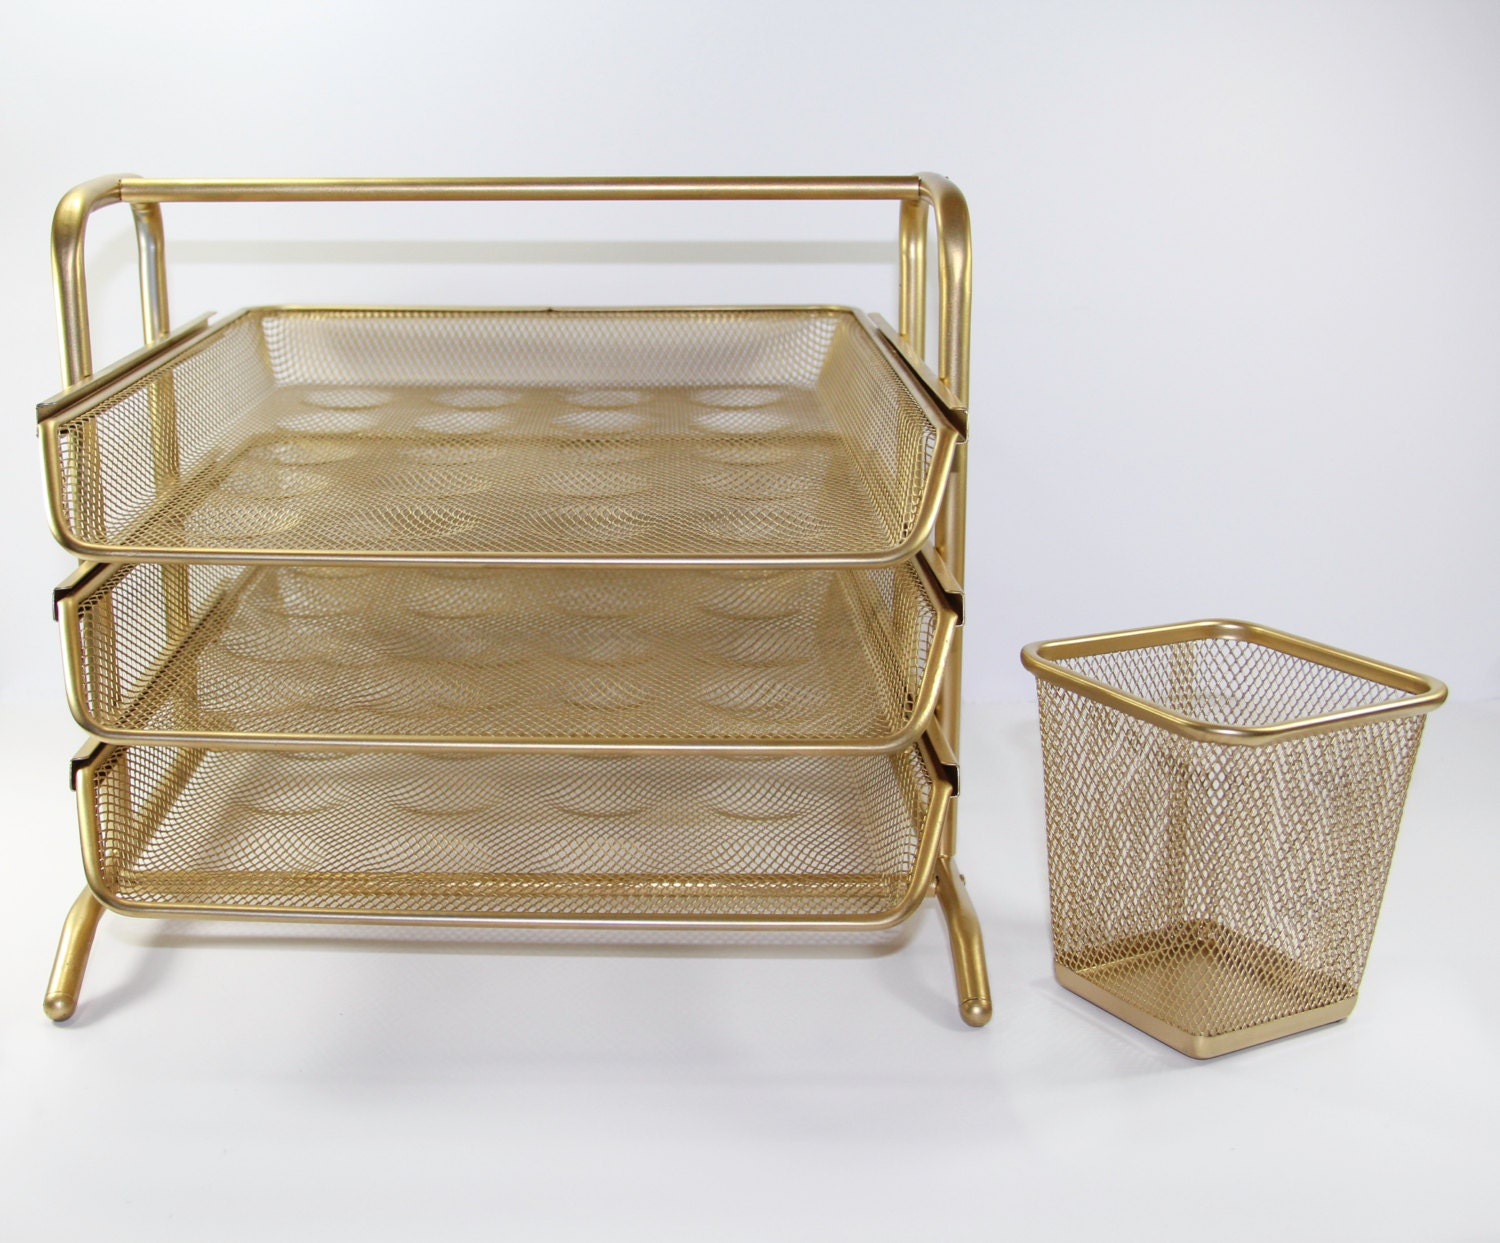 Gold desk organizer set by pinkcoquette on etsy - Desk organizer sets ...